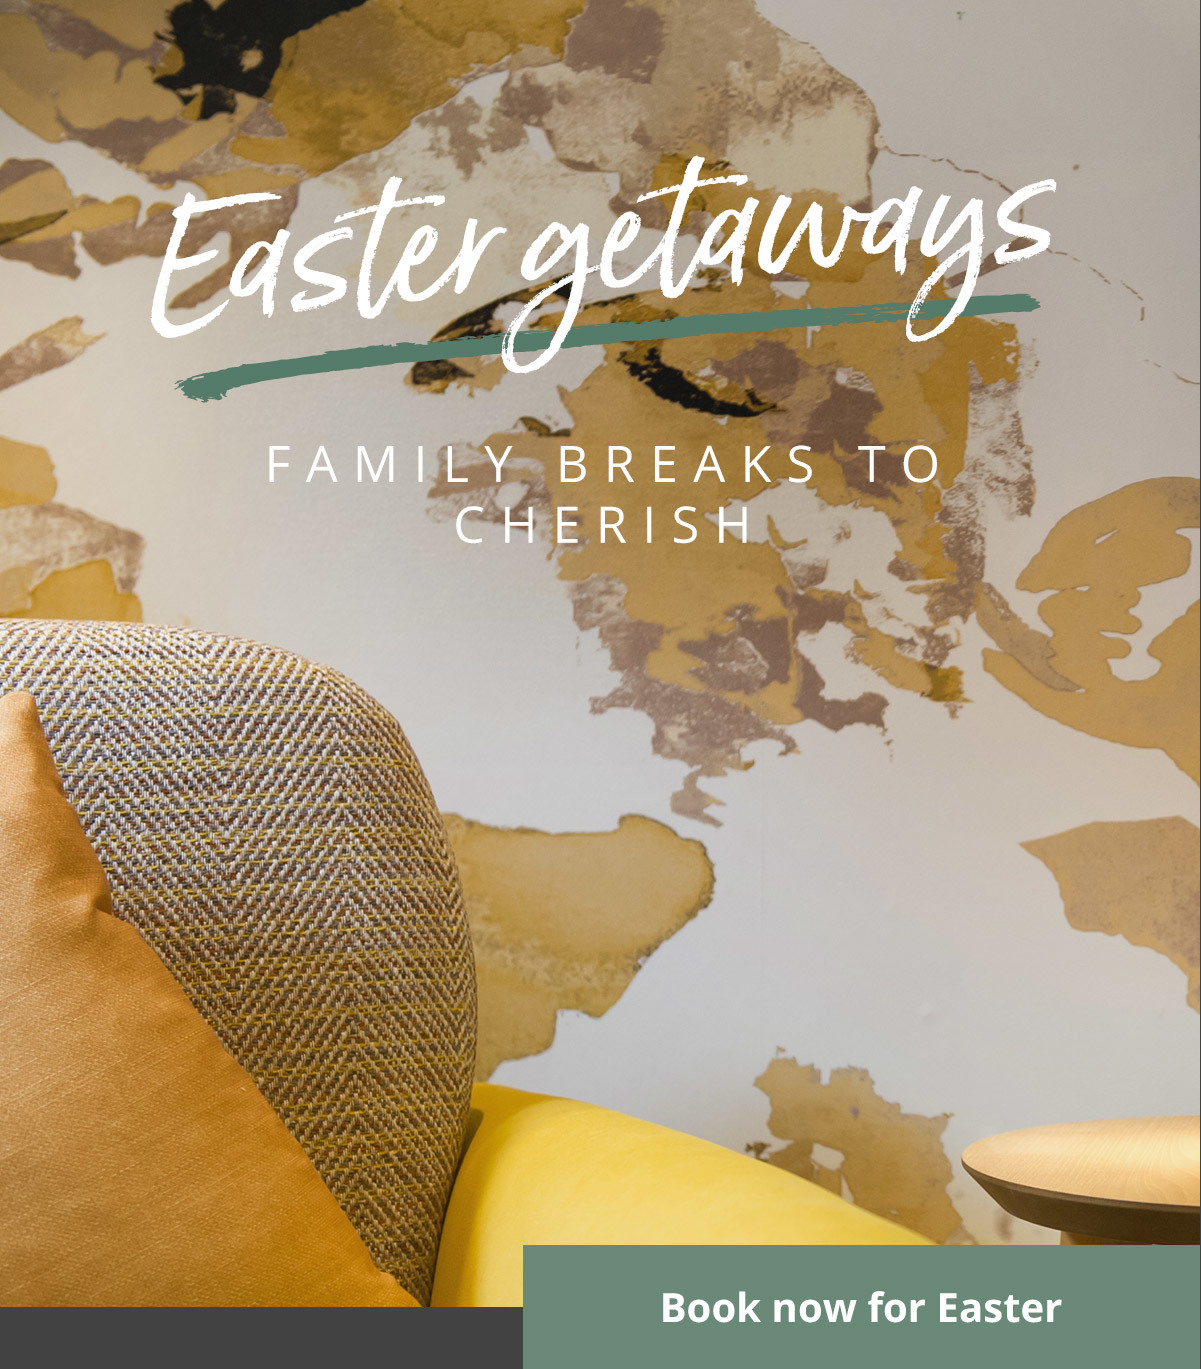 Make memories with your family this Easter with Innkeeper's Lodge